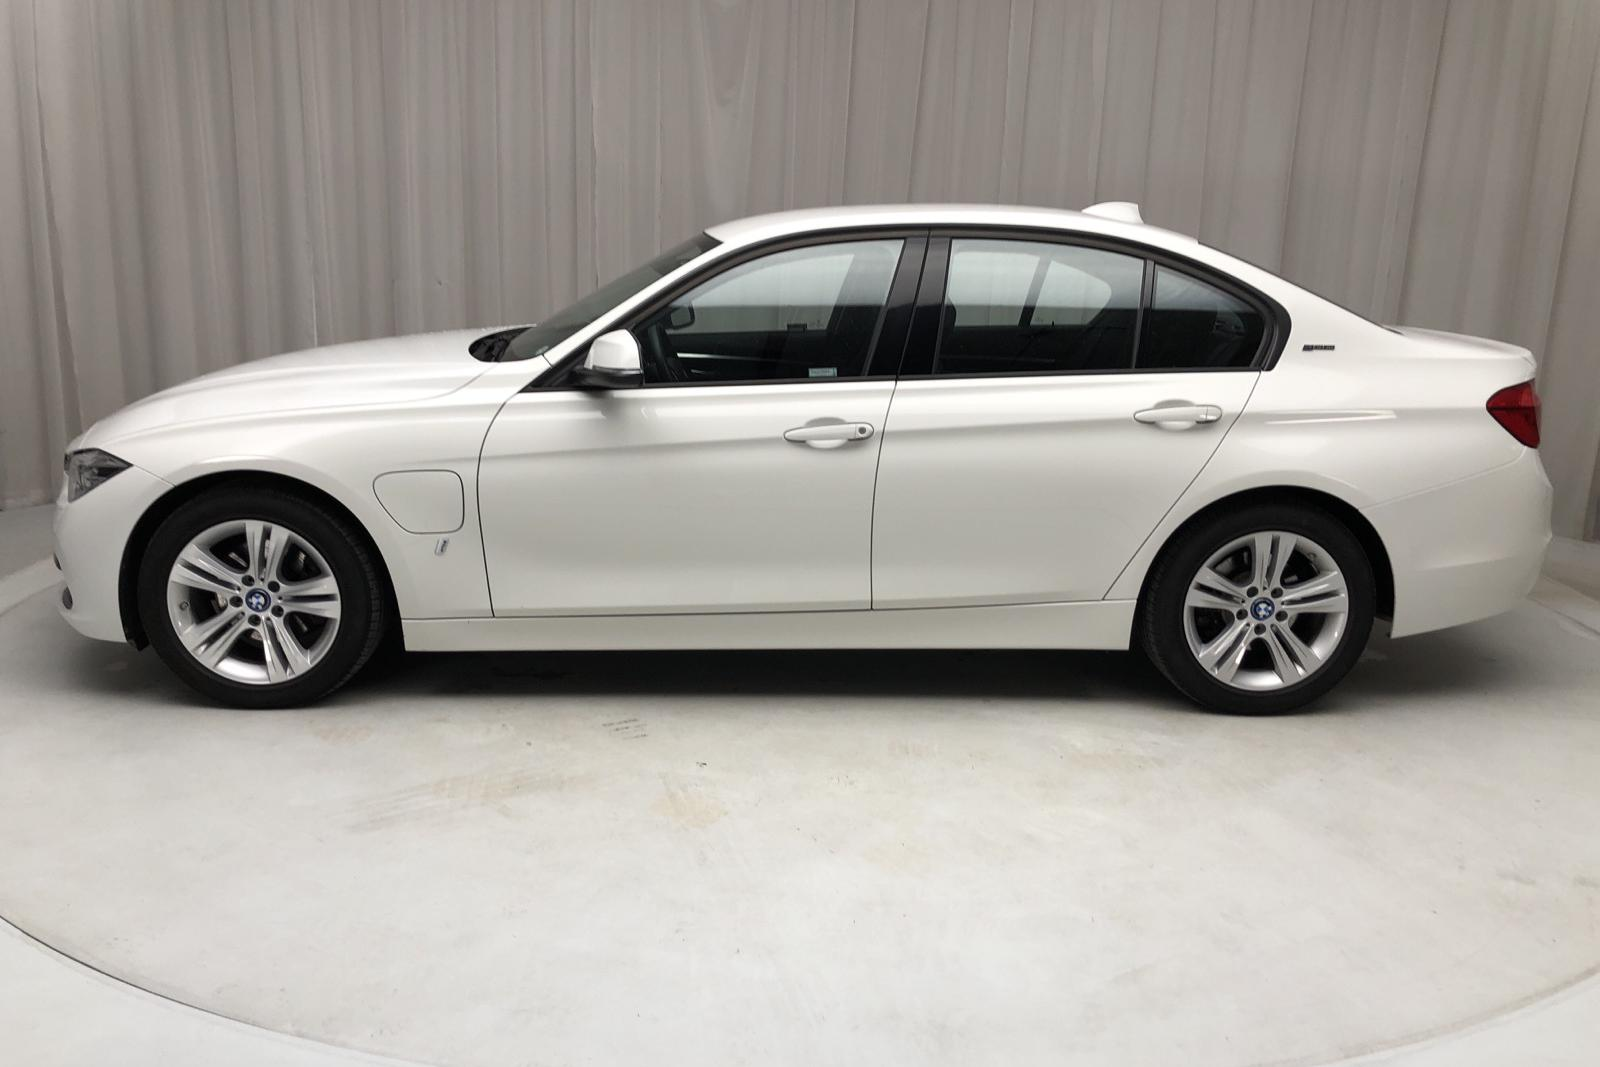 BMW 330e Sedan, F30 Sport Line Navi (252hk) - 52 010 km - Automatic - white - 2018